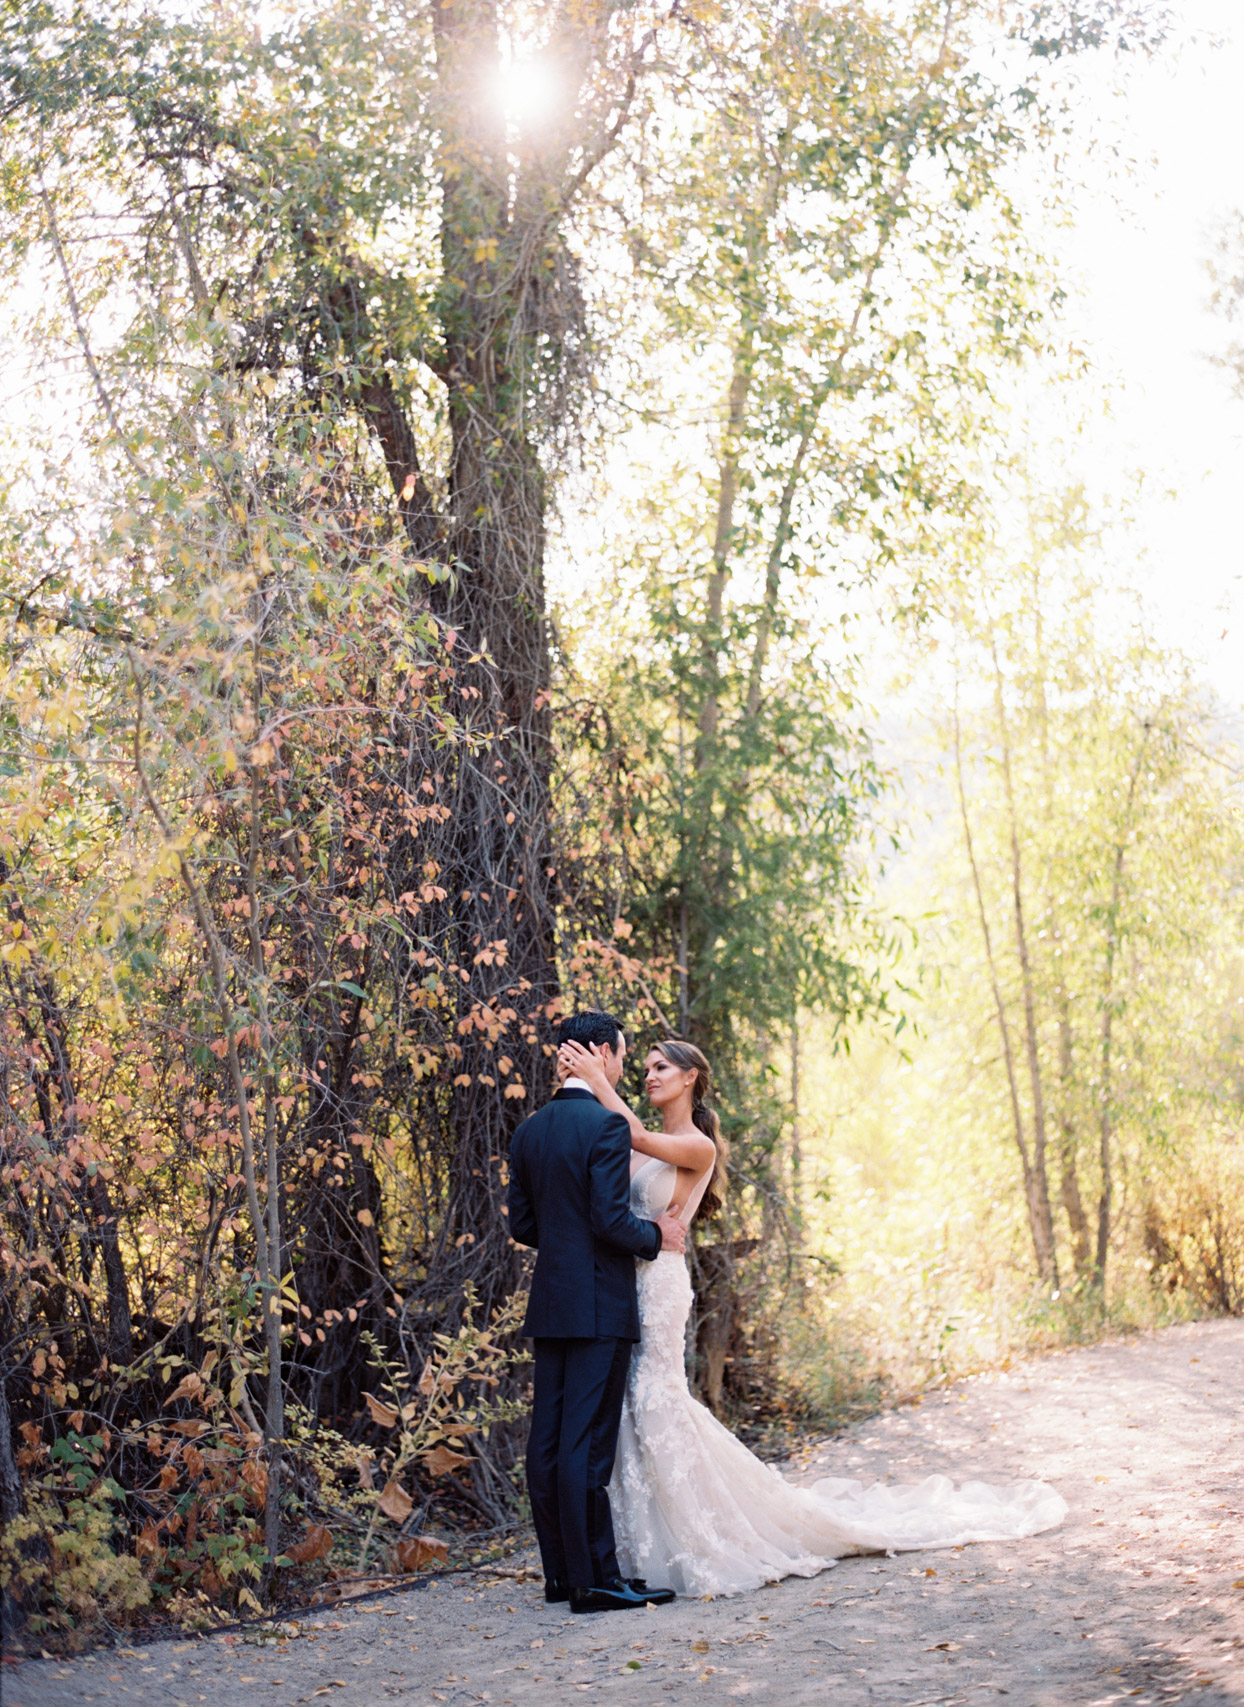 bride and groom embrace looking at each other on outdoor pathway